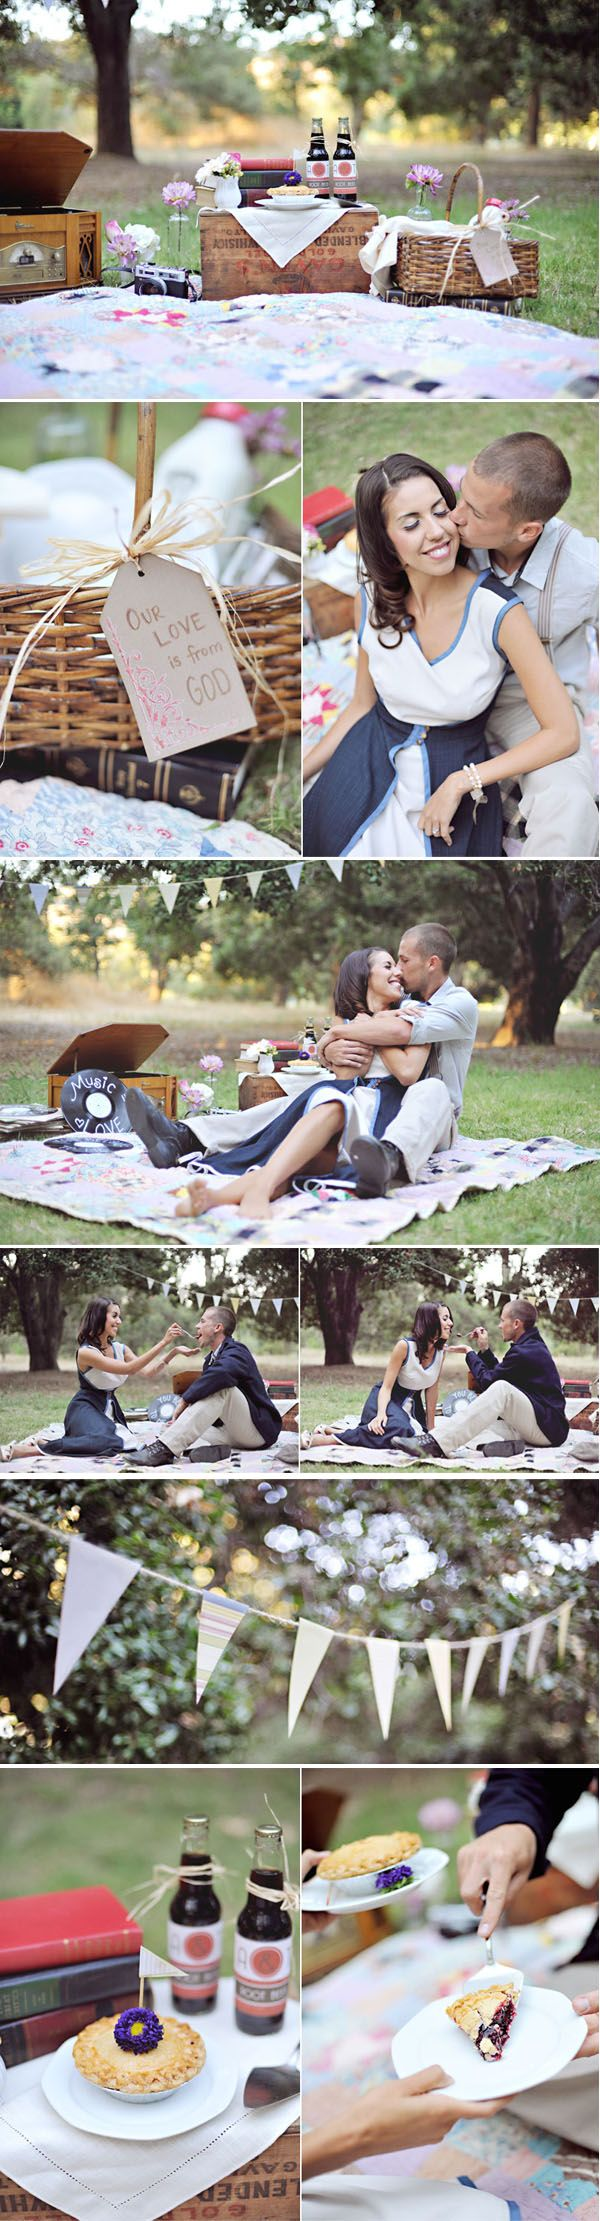 Now this is what you call a themed engagement shoot! picnic basket, blanket, soda & everything! Looks great :)